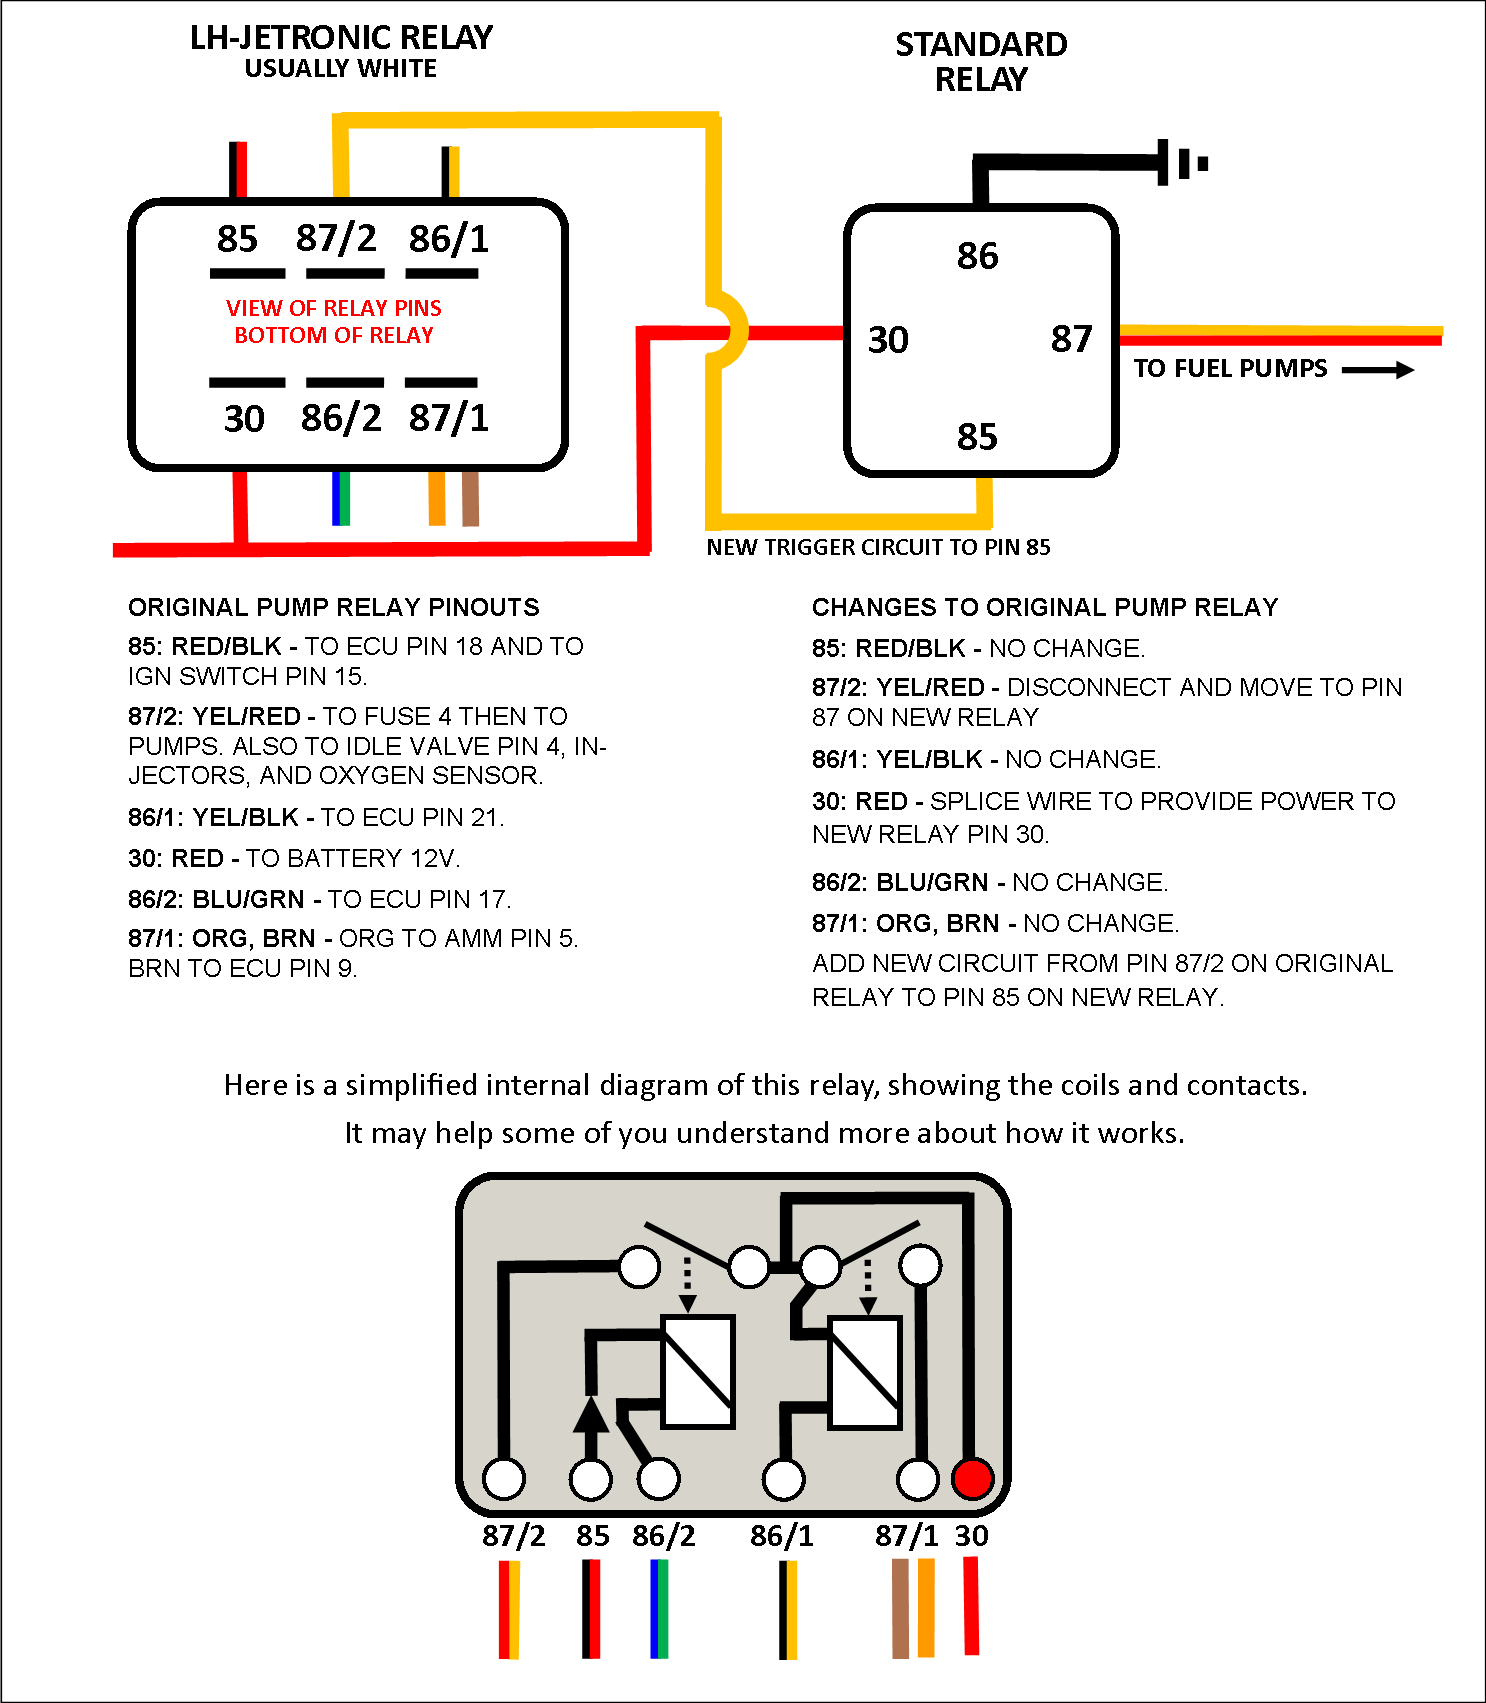 1990 Volvo 240 Stereo Wiring Diagram - 5.12.asyaunited.de • on 1984 nissan pickup wiring diagram, 1984 dodge ramcharger wiring diagram, 1984 jeep cj7 wiring diagram, 1984 ford bronco wiring diagram, 1984 jeep cherokee wiring diagram, 1984 jaguar xj6 wiring diagram, 1984 suzuki samurai wiring diagram, 1984 porsche 928 wiring diagram, 1984 cadillac eldorado wiring diagram,